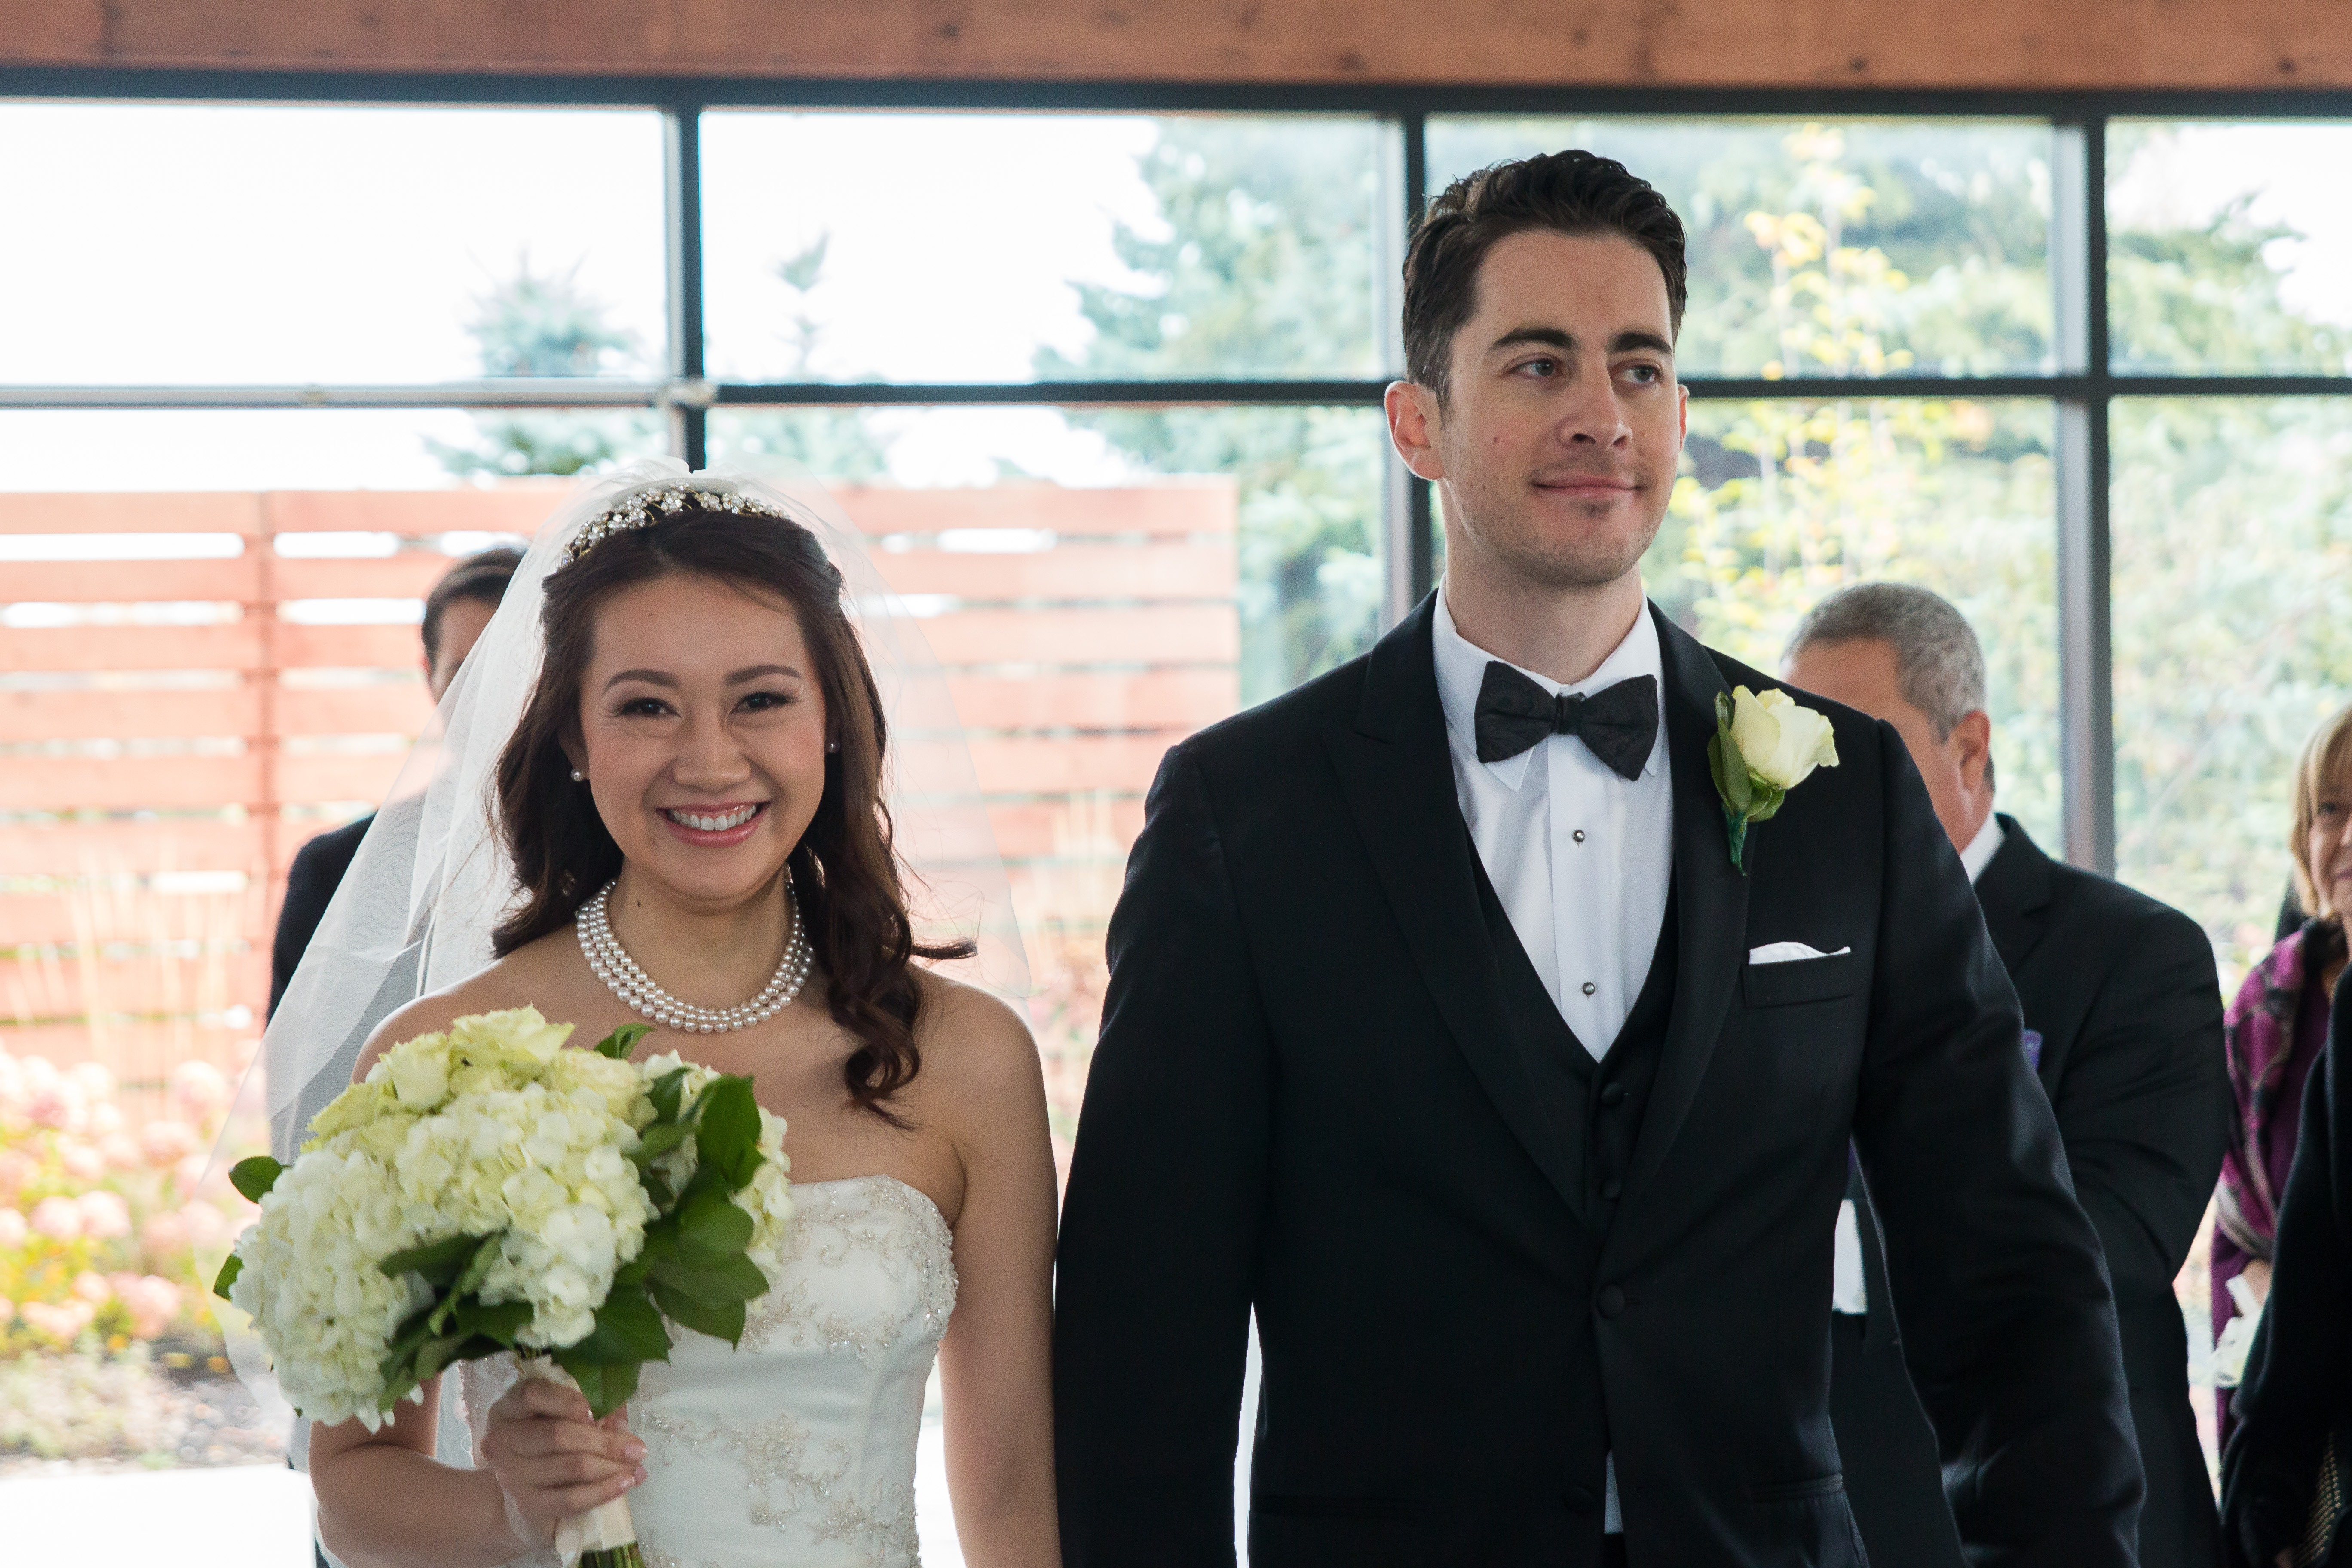 just married walking down the aisle smiling